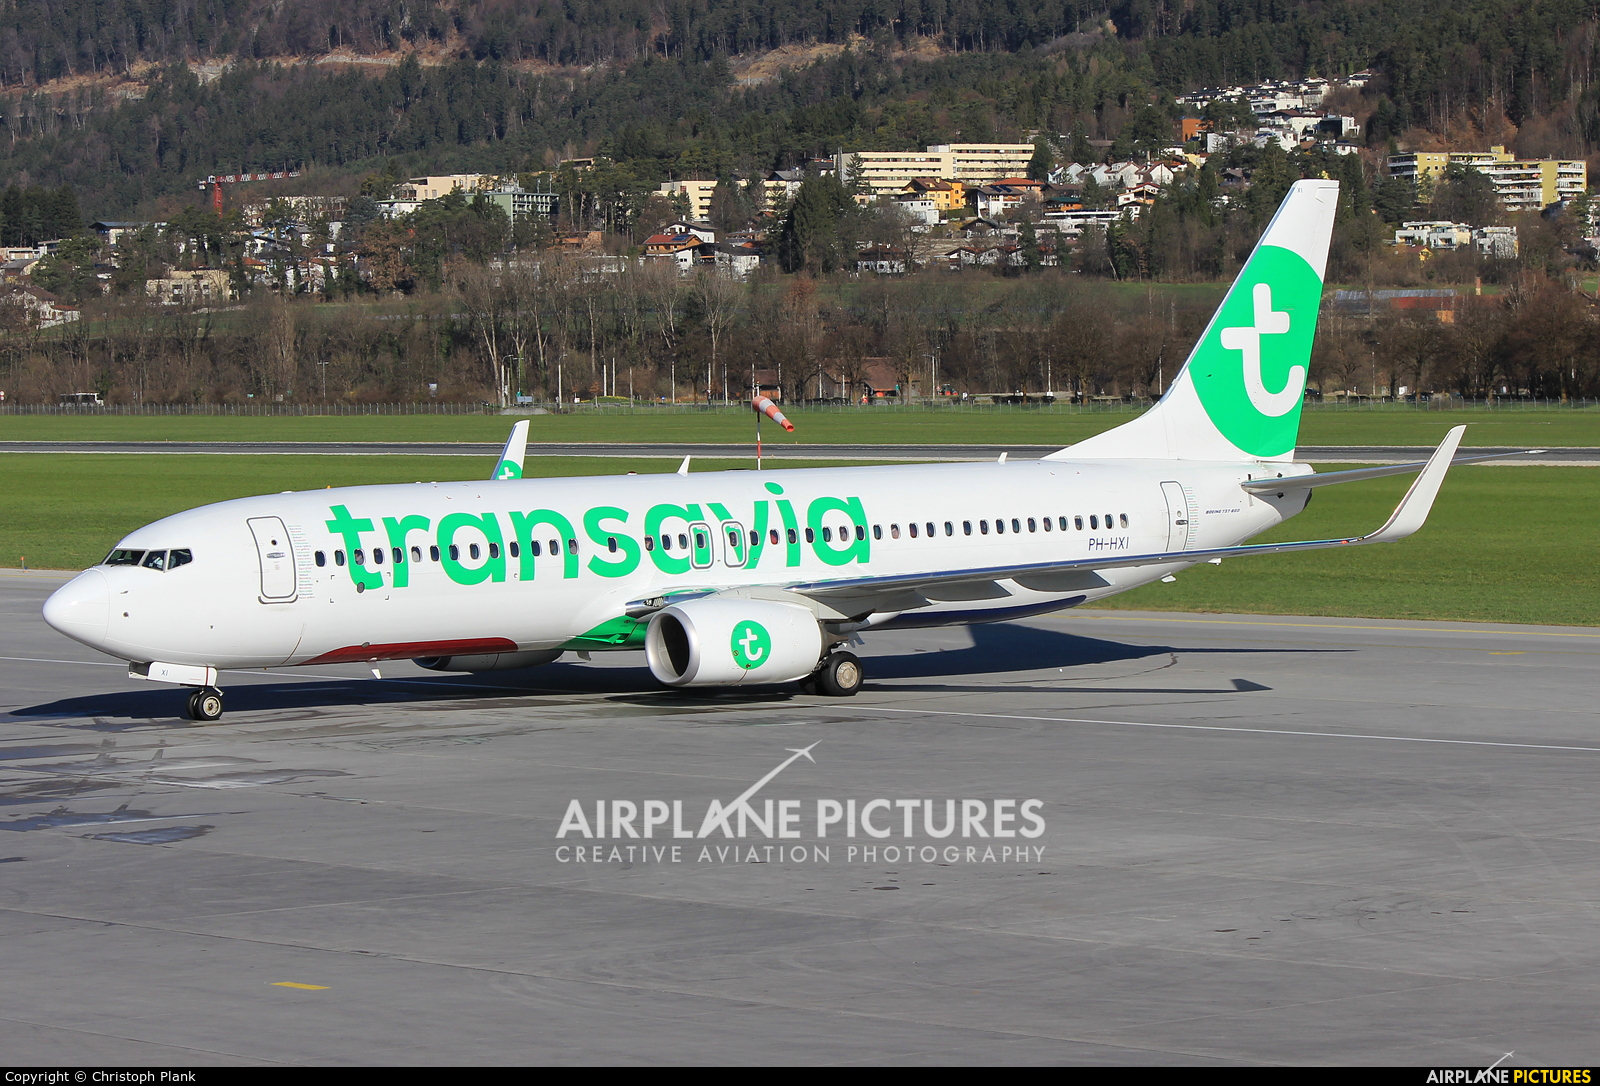 Transavia PH-HXI aircraft at Innsbruck